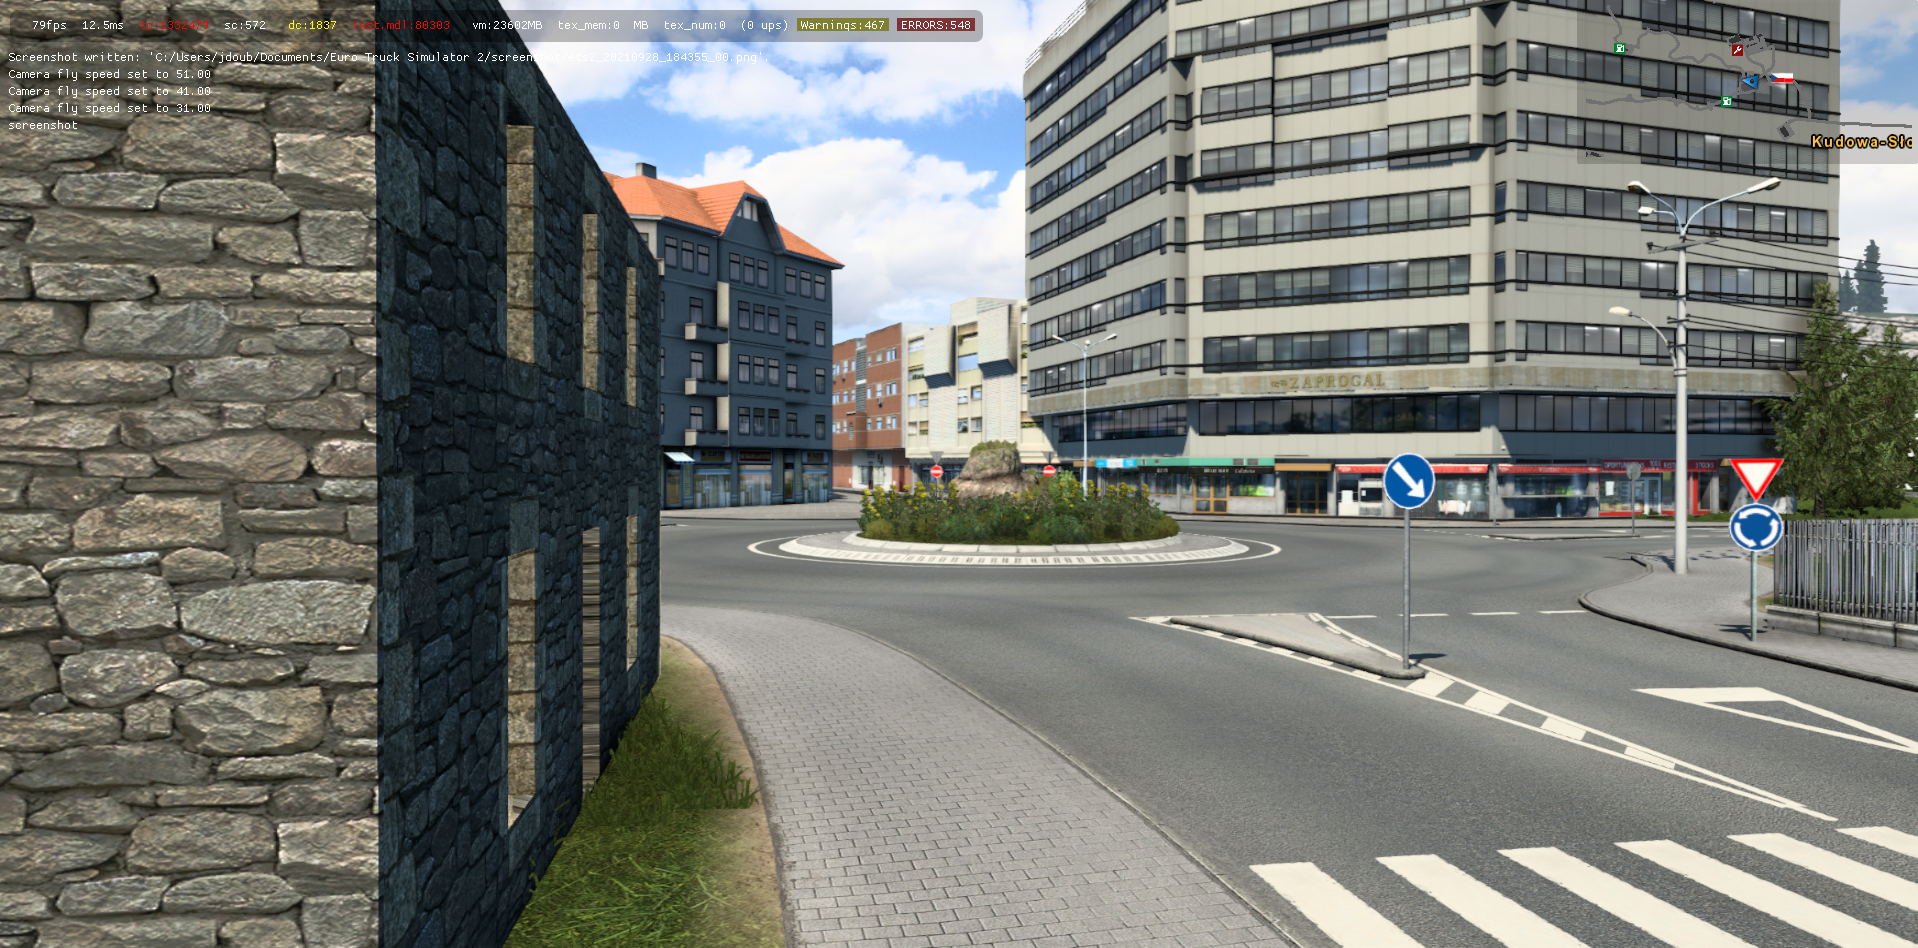 ets2_20210928_184411_00.png